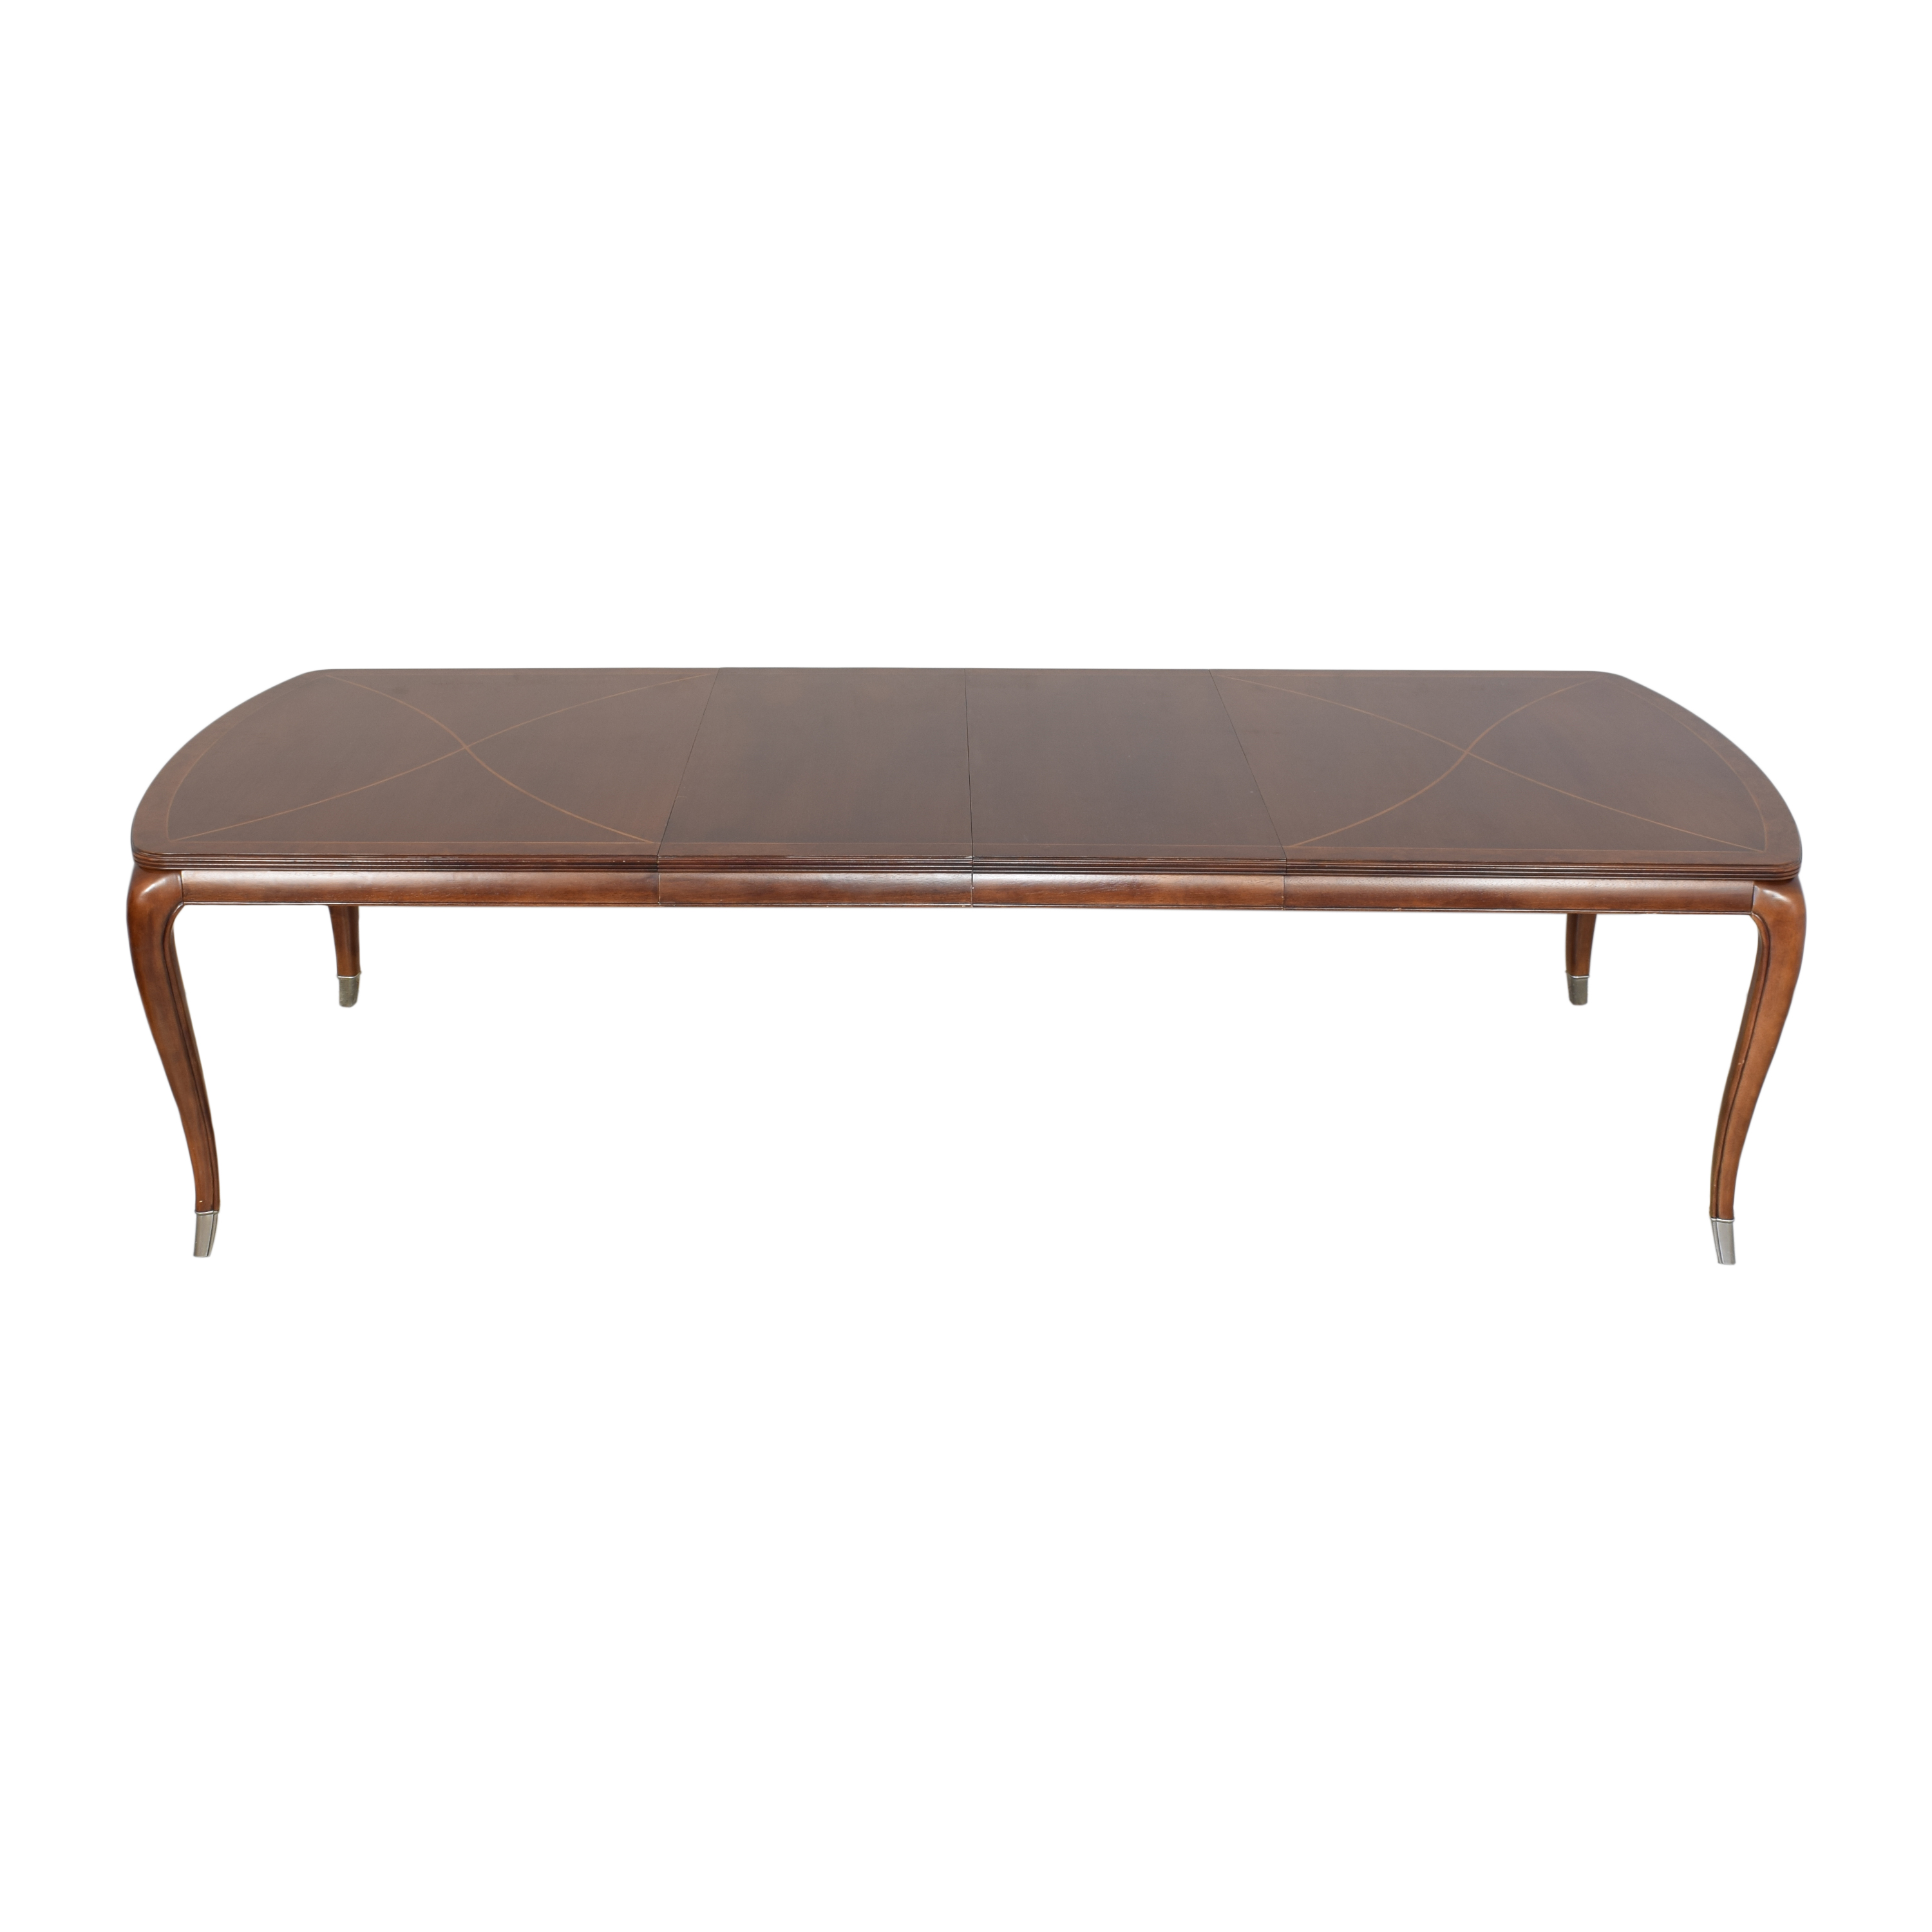 Thomasville Thomasville Bogart Collection Extendable Dining Table for sale